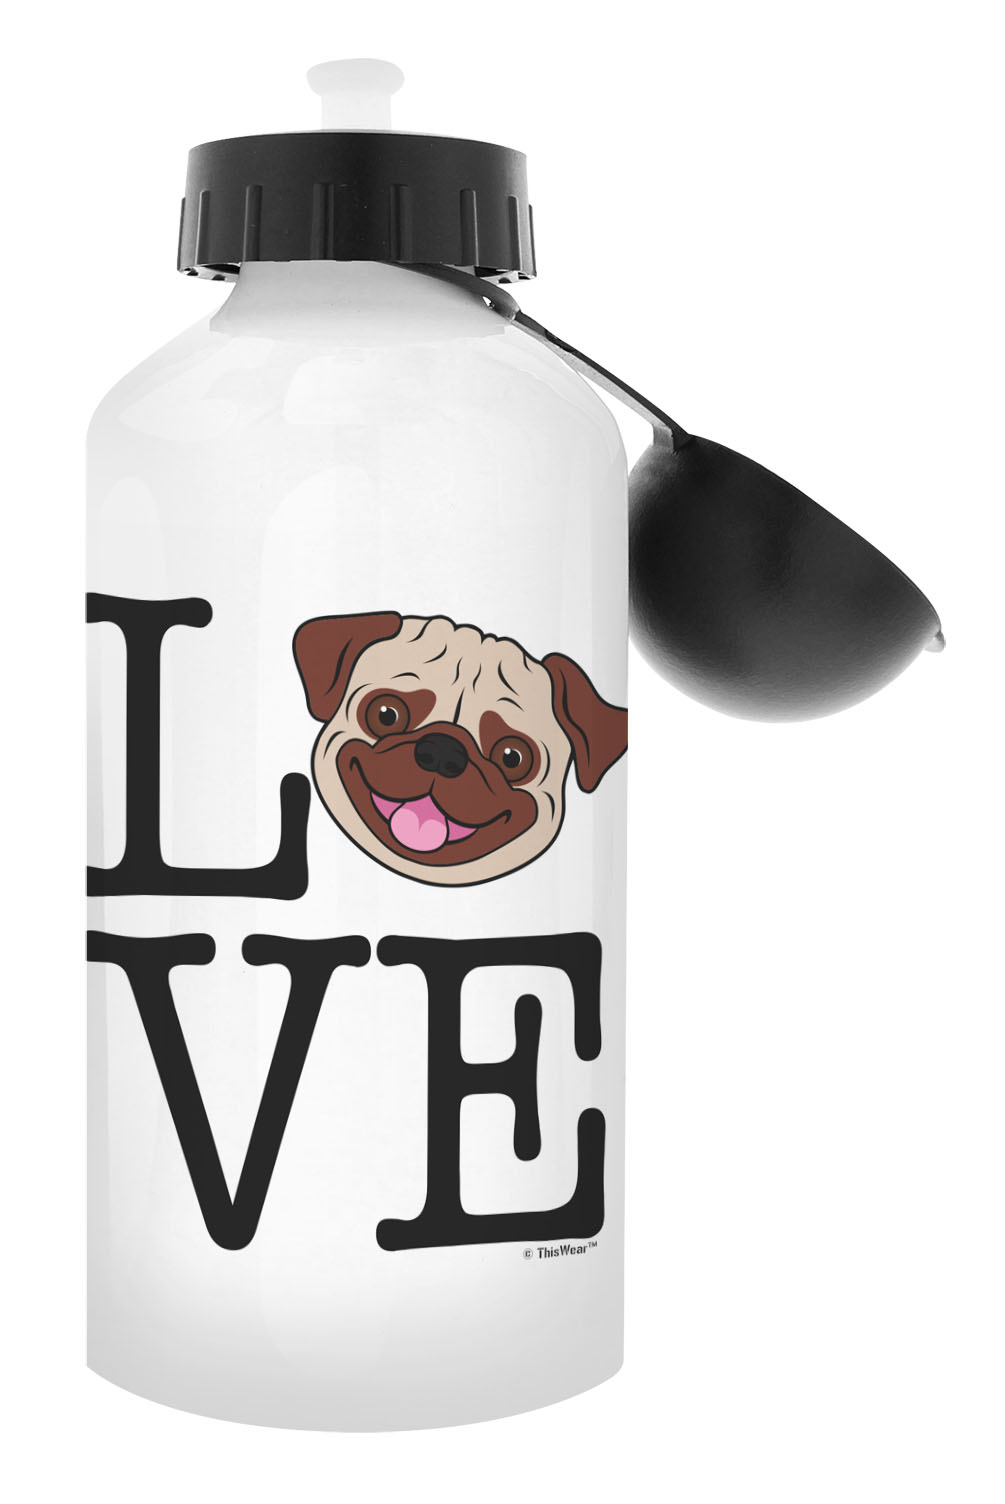 Pug Dog Gifts Pug Water Bottle Dog Themed Gifts Aluminum Aluminum Water Bottle